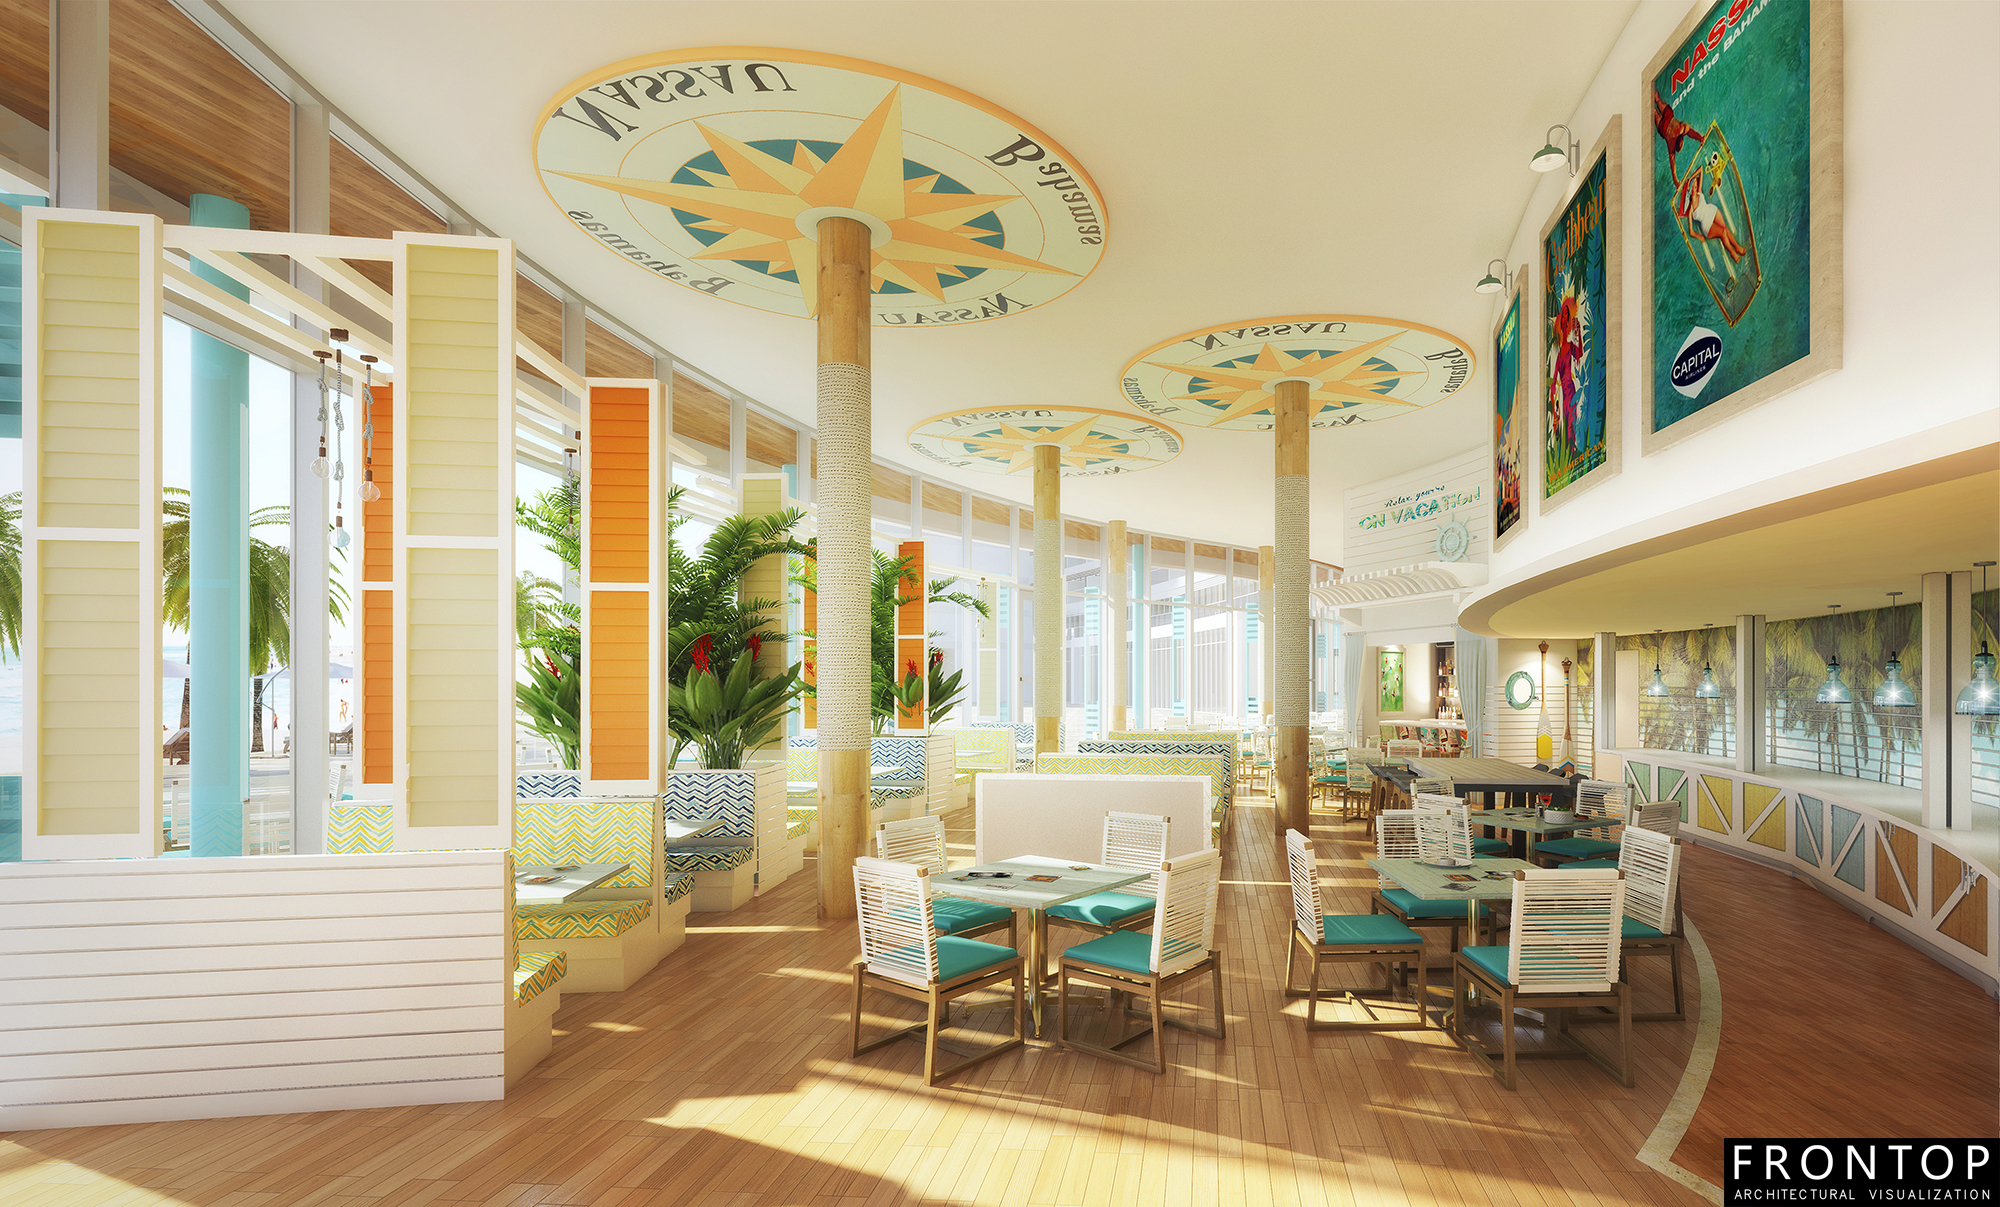 High Performance 3d Rendering Design For Restaurant - Nassau – Frontop Featured Image